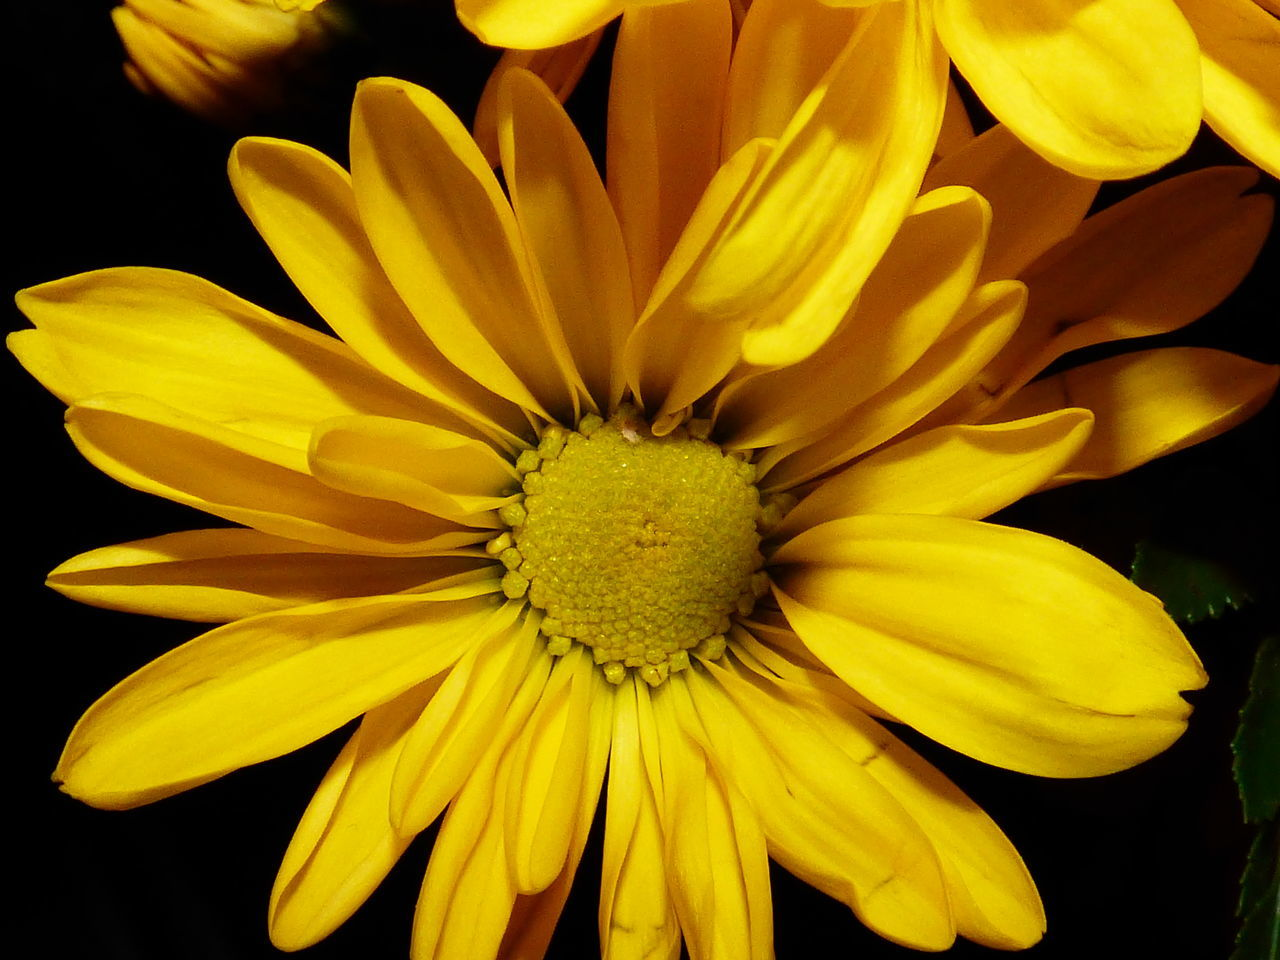 Daisy Love. A beautiful yellow Daisy against a black backdrop commanding all attemtion Beauty In Nature Black Background Cbkelley Photography Close-up Daisy Close Up Daisy Flower Daisy Love Day Flower Flower Head Fragility Freshness Nature No People Outdoors Petal Plant Pollen Yellow EyeEmNewHere